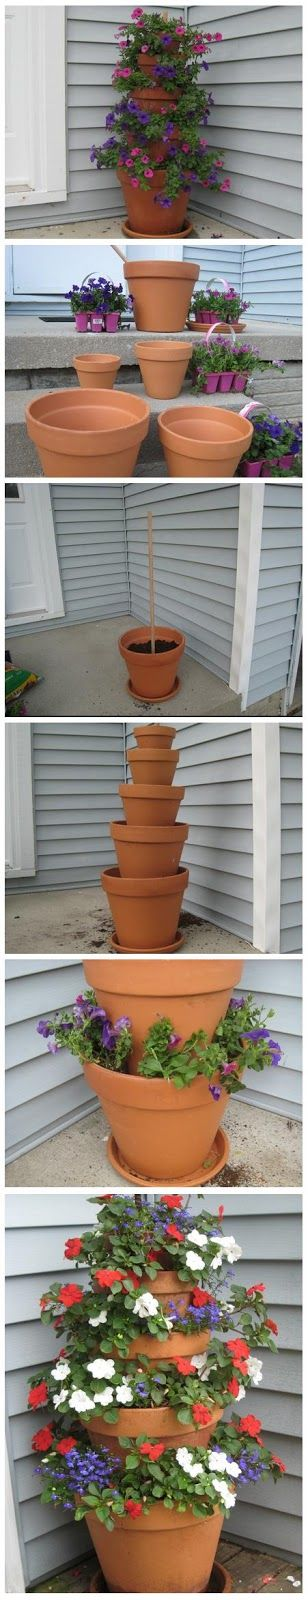 Terra Cotta Pot Flower Tower with Annuals | World In Green  Maybe I could use some of those zillions of pots I have in the backyard to do this!